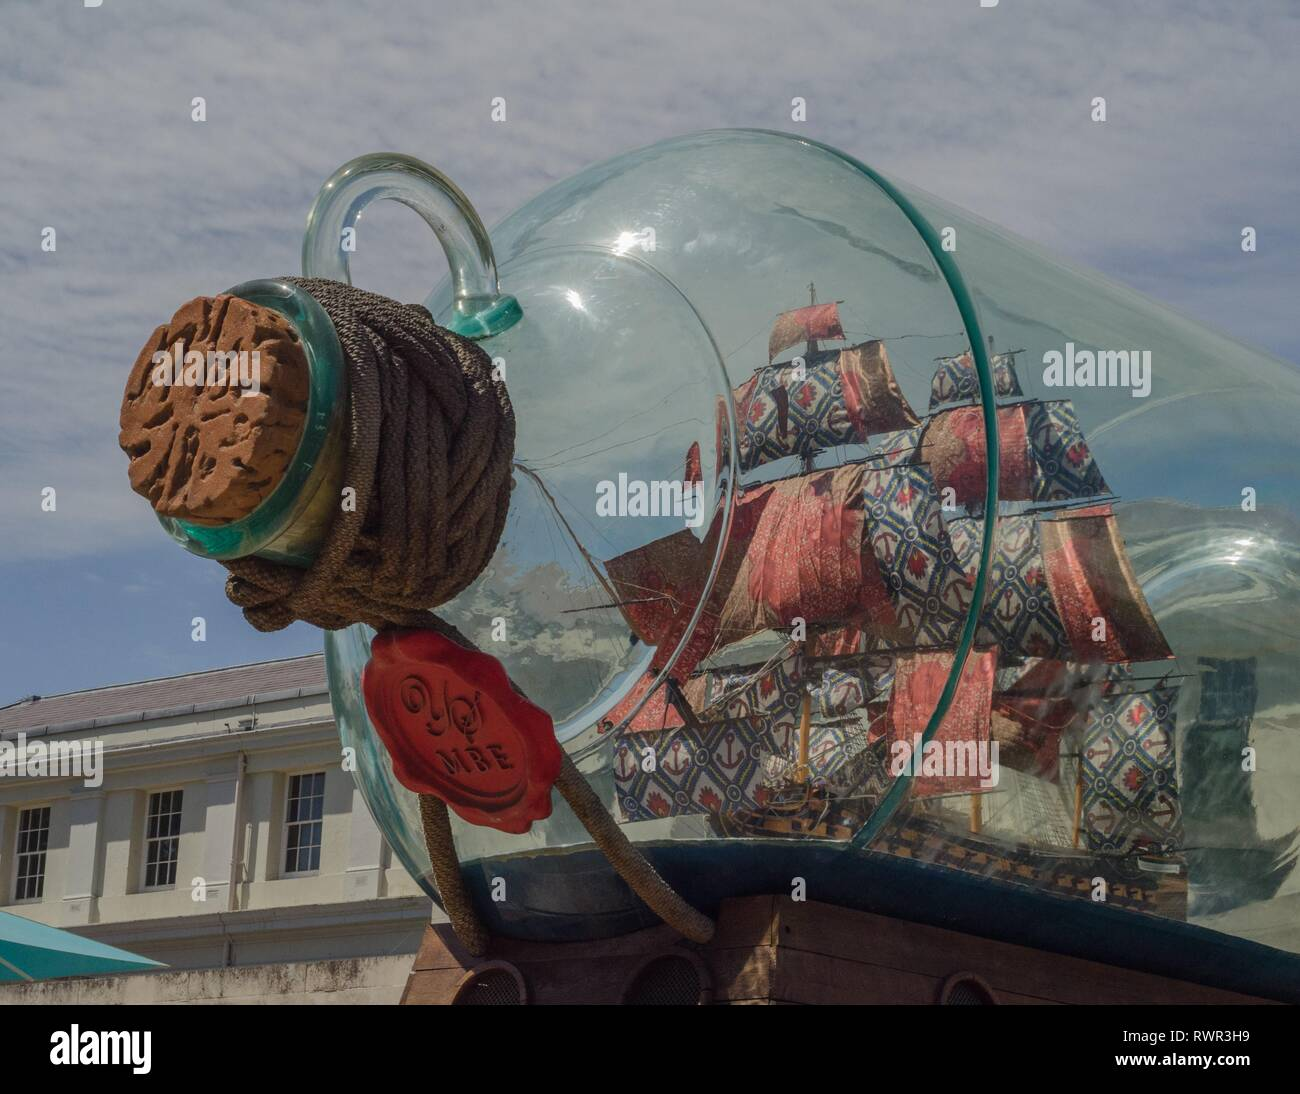 A monument depicting Lord Nelson's ship, HMS Victory, stands outside the National Maritime Museum in Greenwich, London, England. Stock Photo